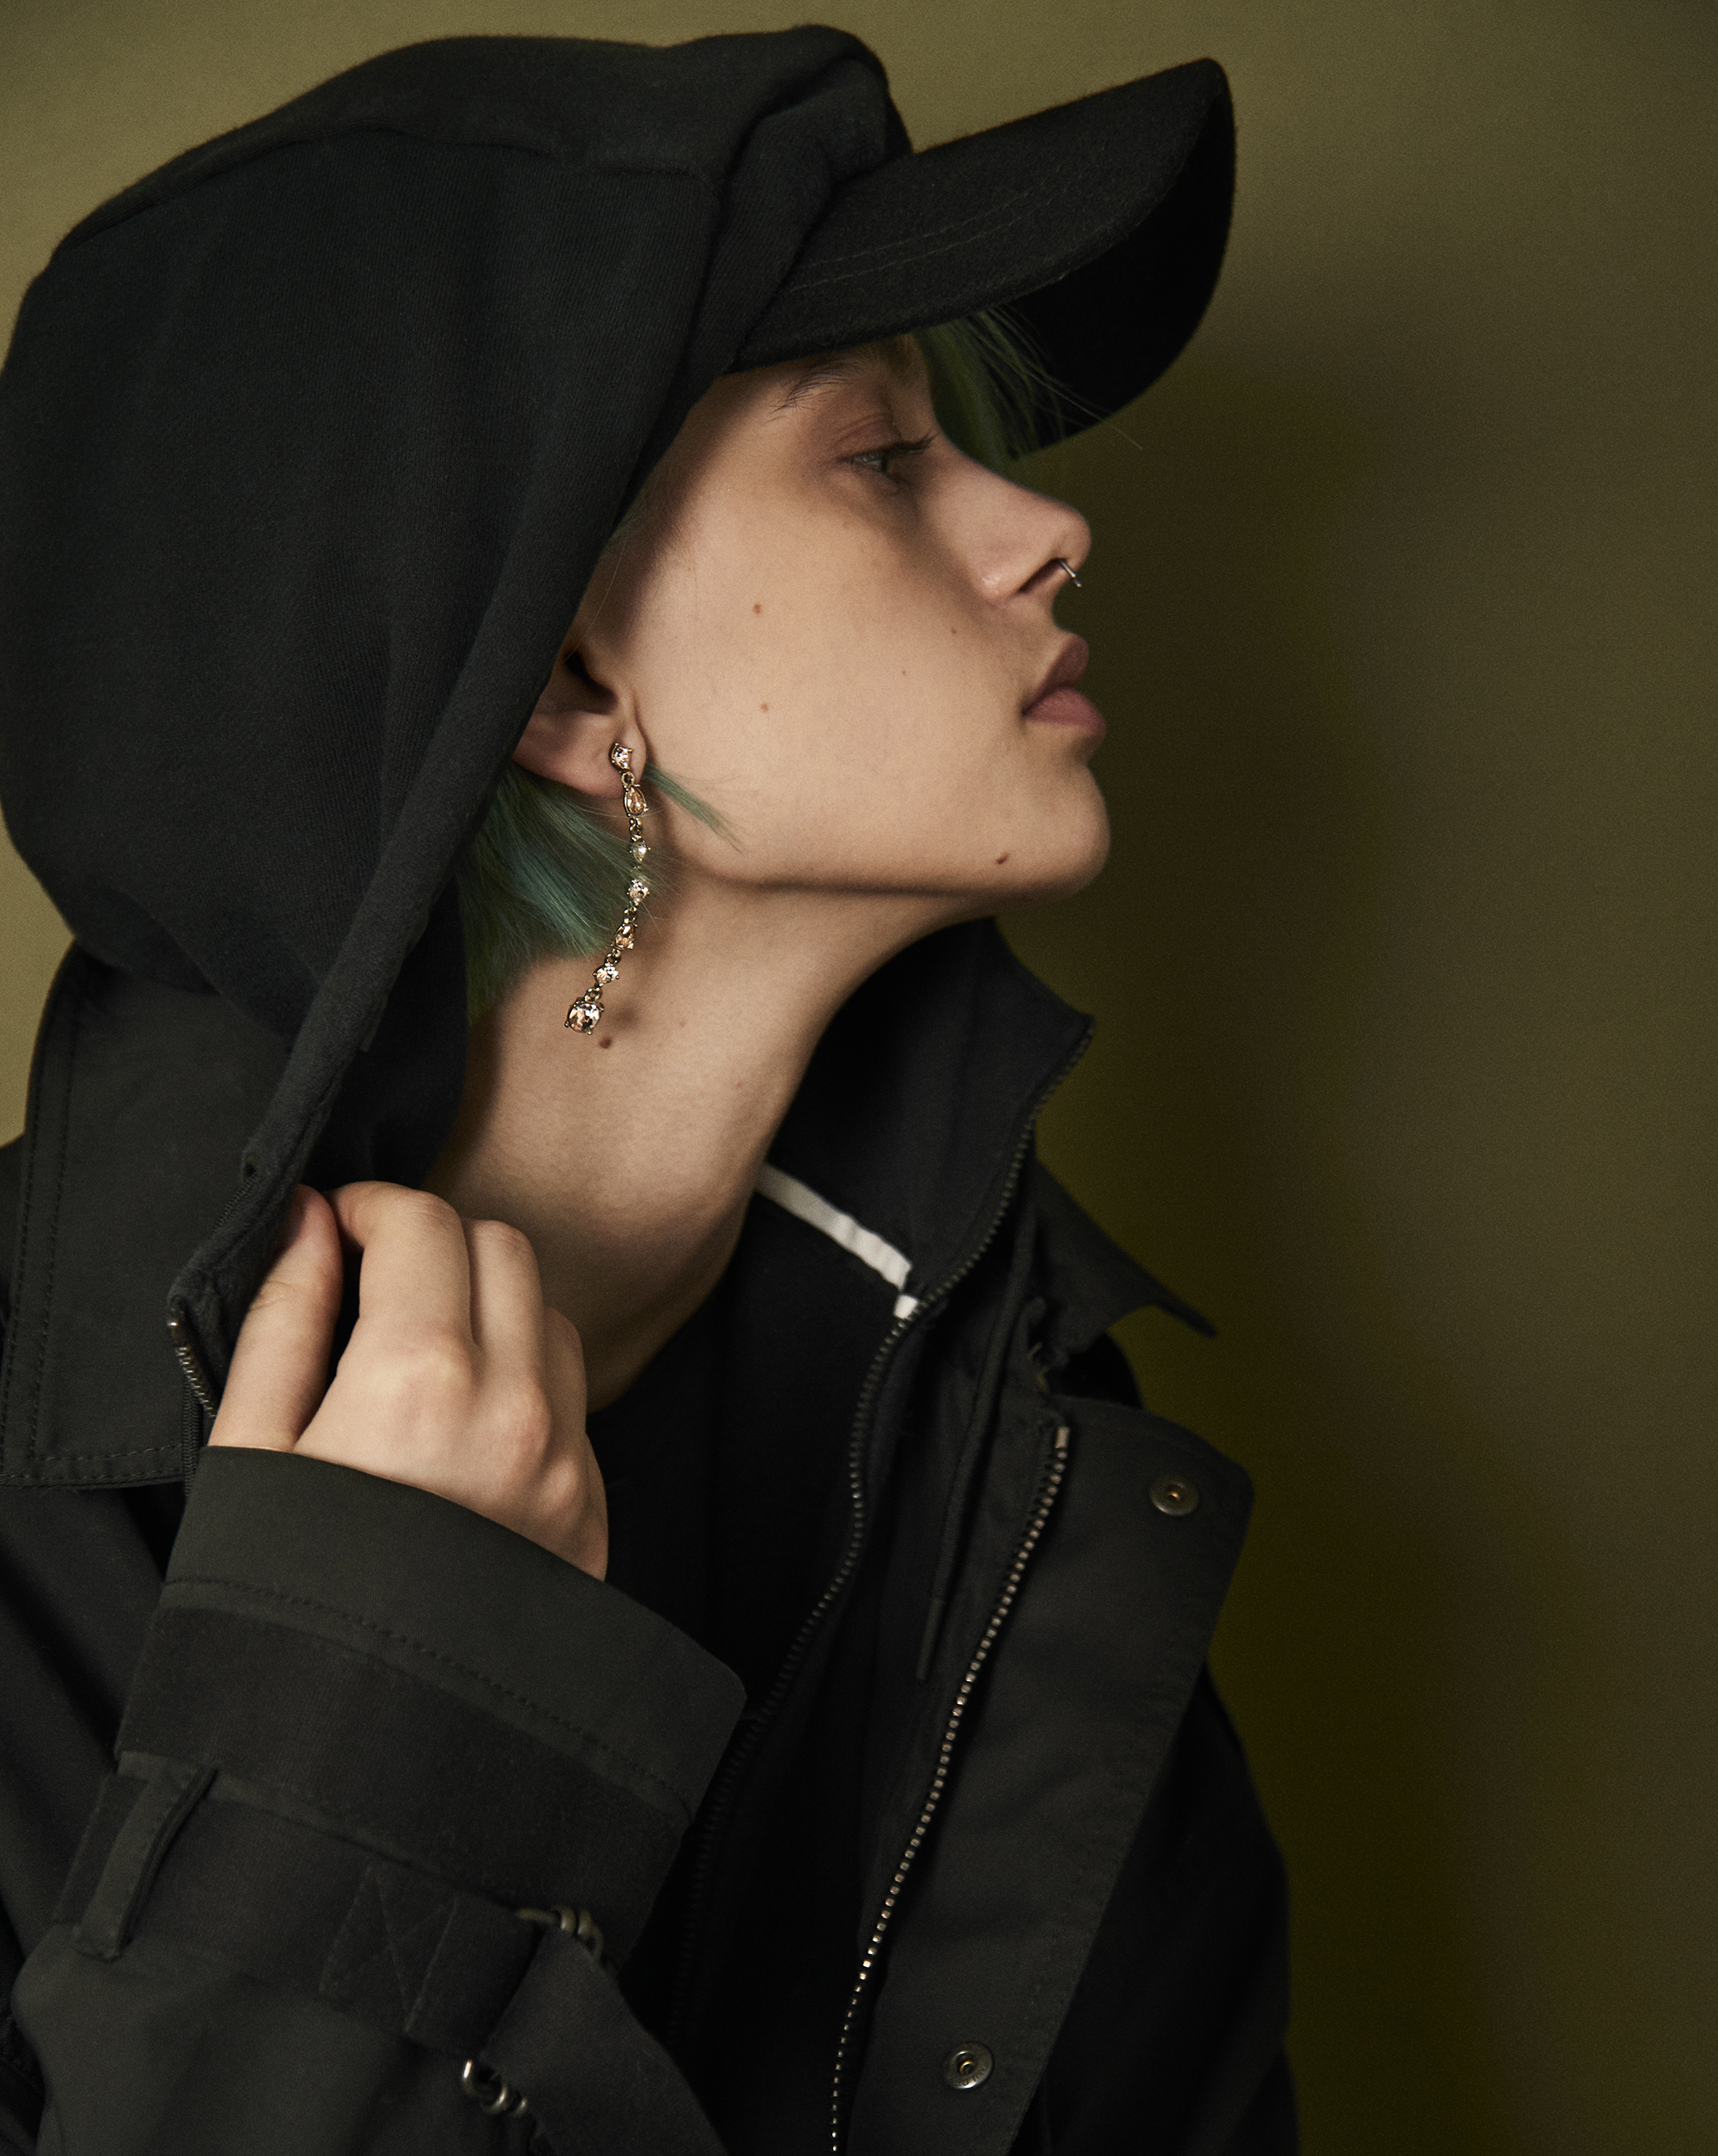 Hooded sweatshirt  Nike . Jacket  Diesel Black Gold . Earring  Givenchy . Wool cap  Epoch